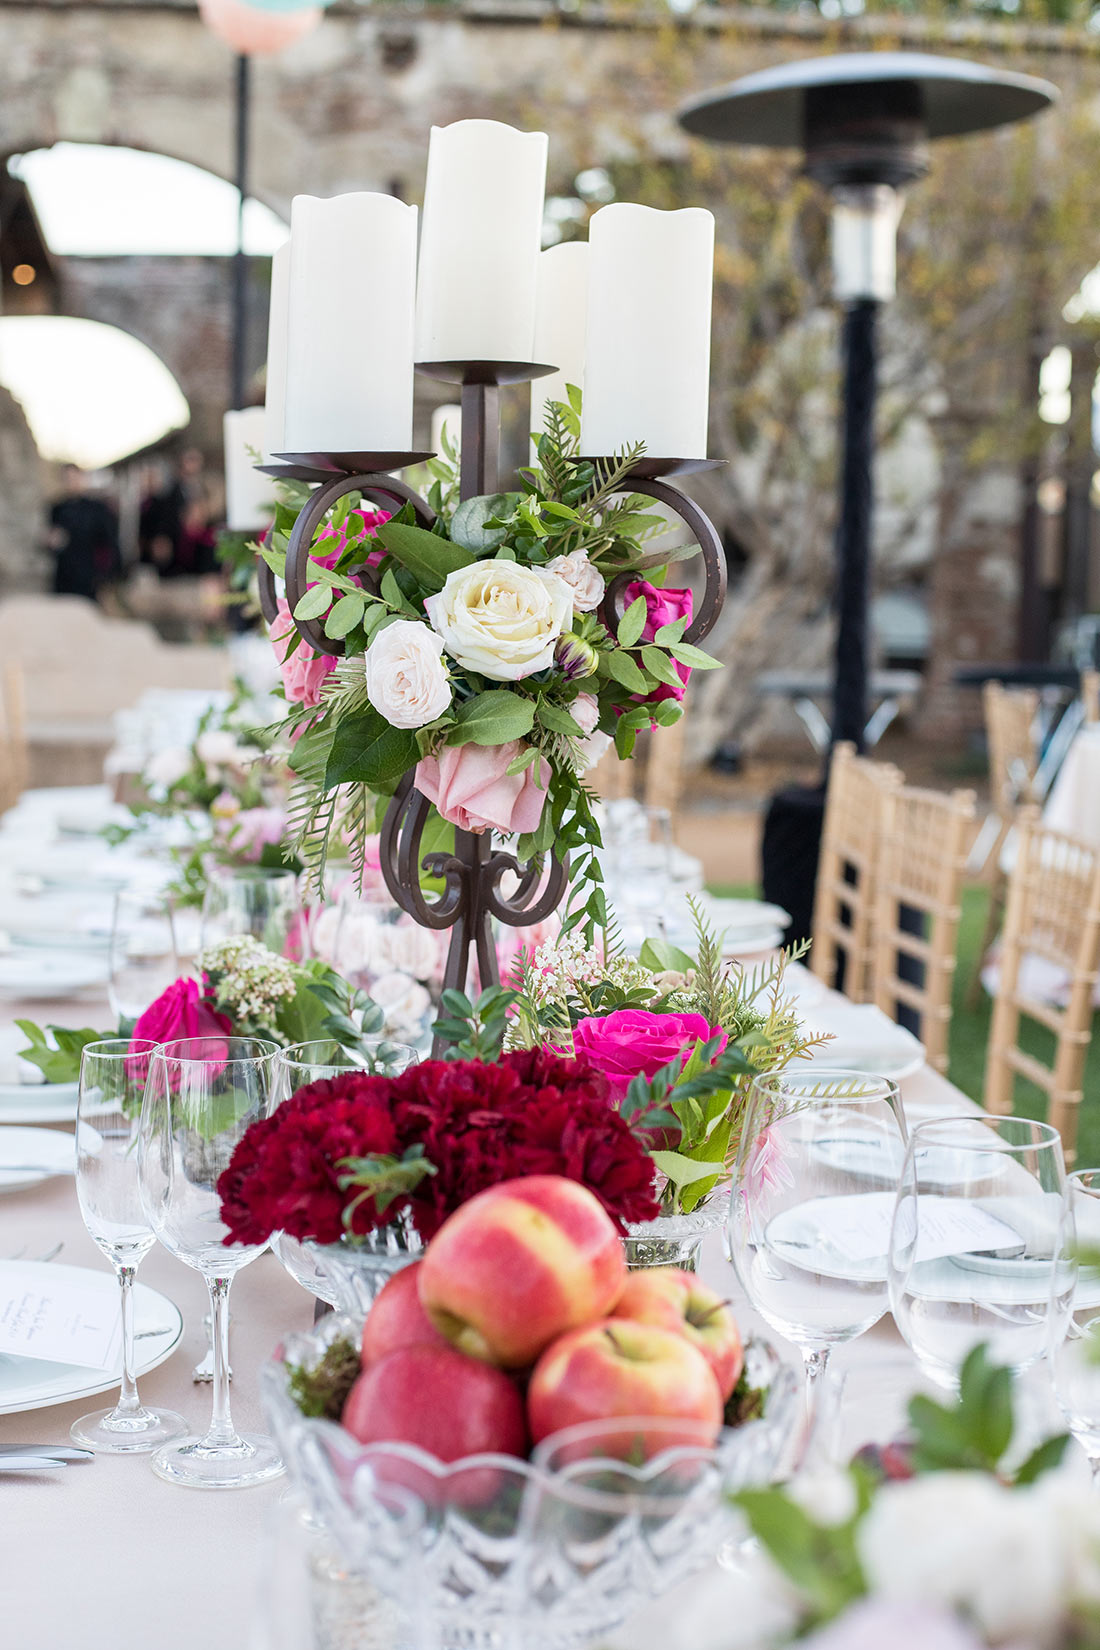 An image of the center piece of candles decorated with white, light pink and pink roses for the Mission San Juan Capistrano Gala